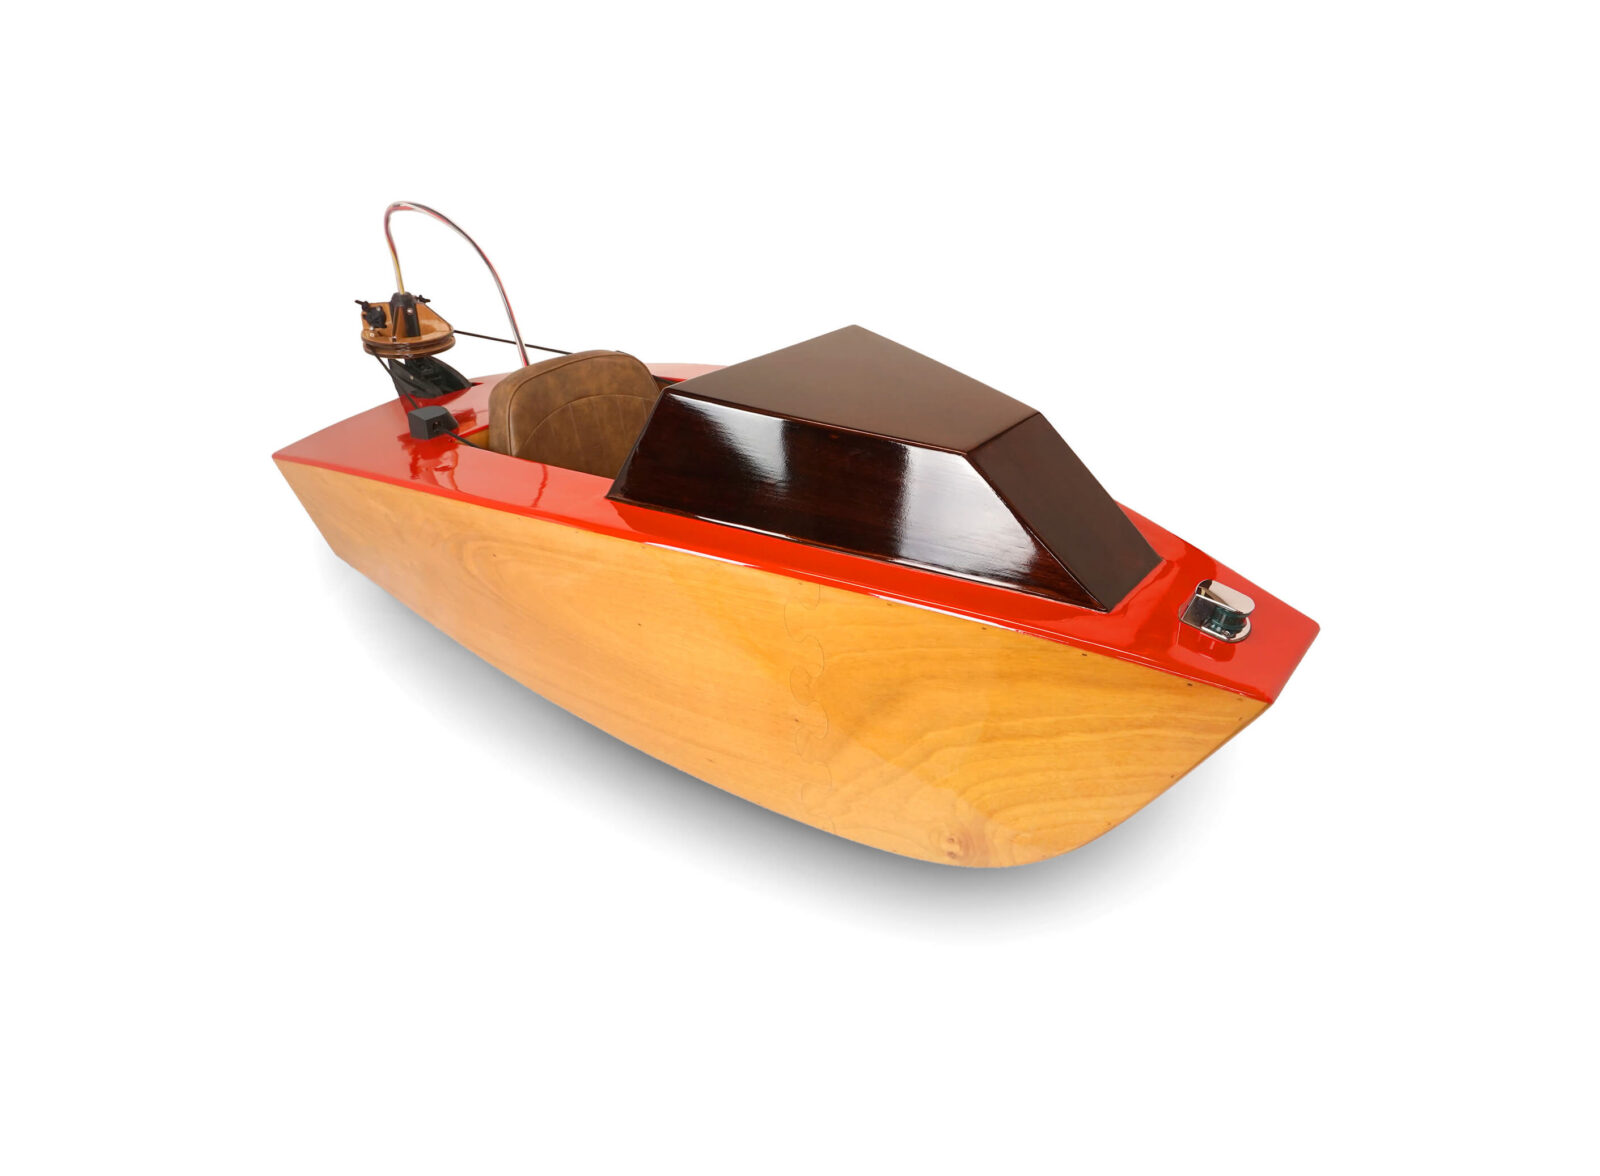 Rapid Whale Mini Boat 1600x1176 - Rapid Whale Mini Boat - An Electrically Powered Kit-Built Mini Boat